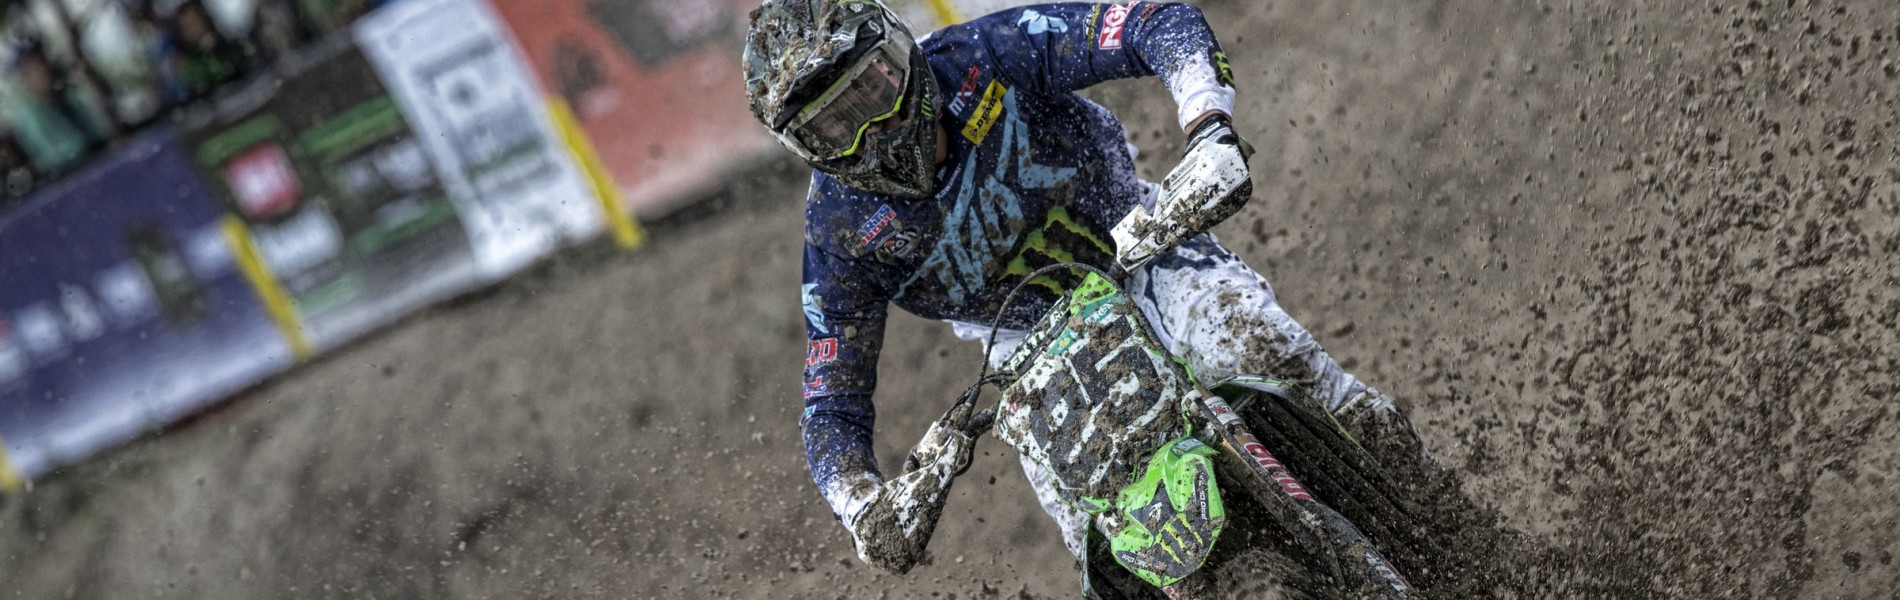 Clement Desalle at the 2018 Grand Prix of Indonesia